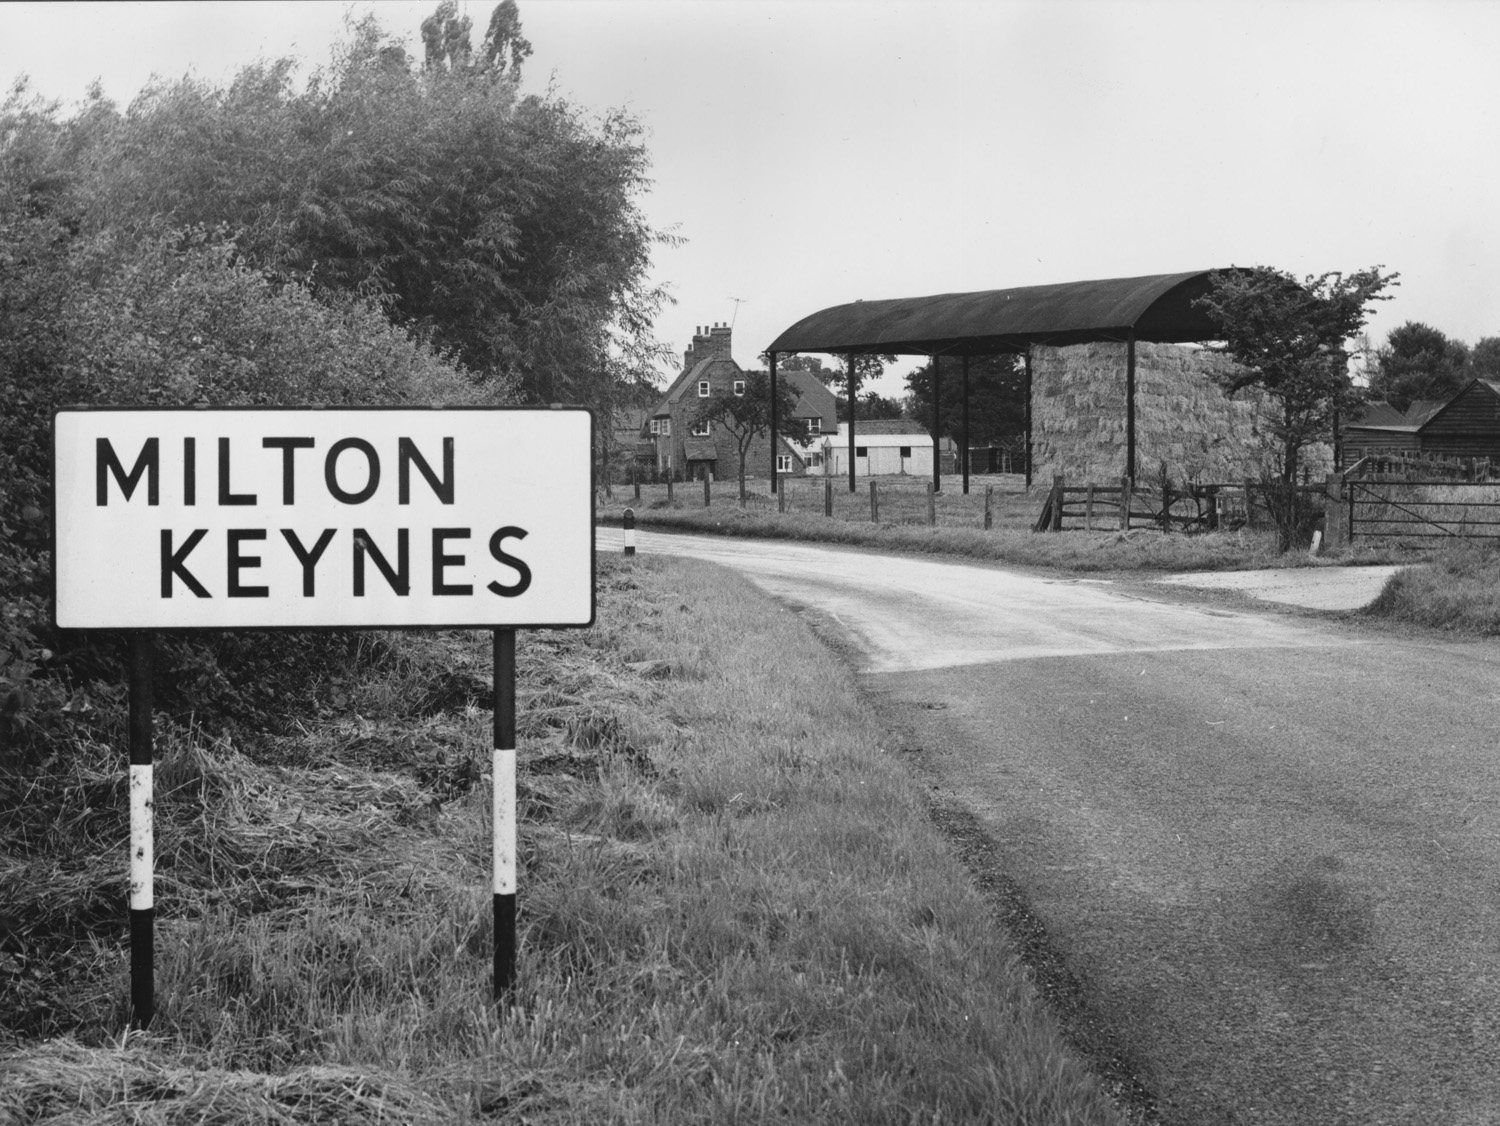 old black and white image of milton keynes road sign